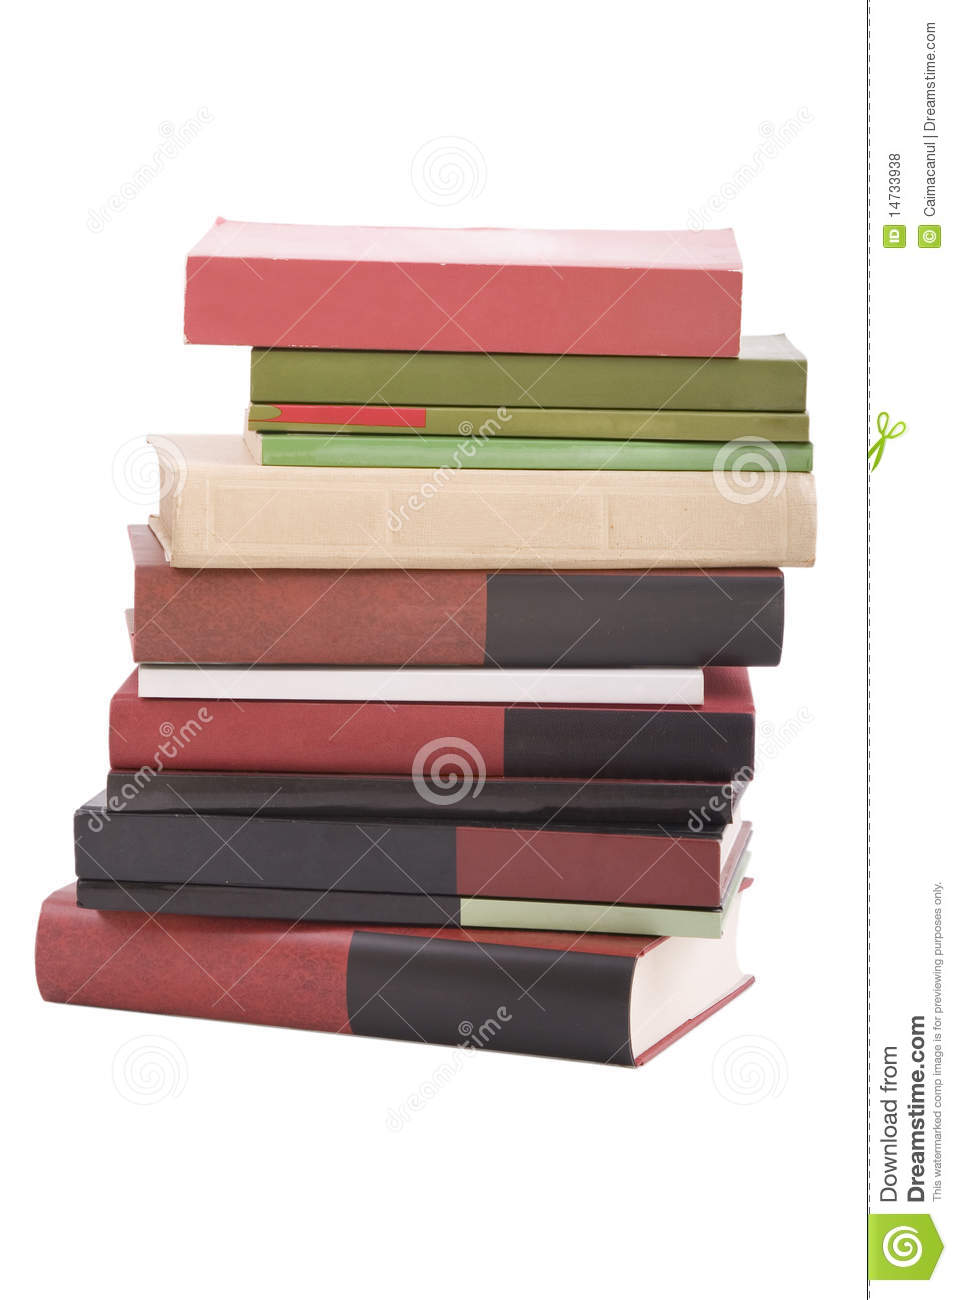 Tower books arranged in stack